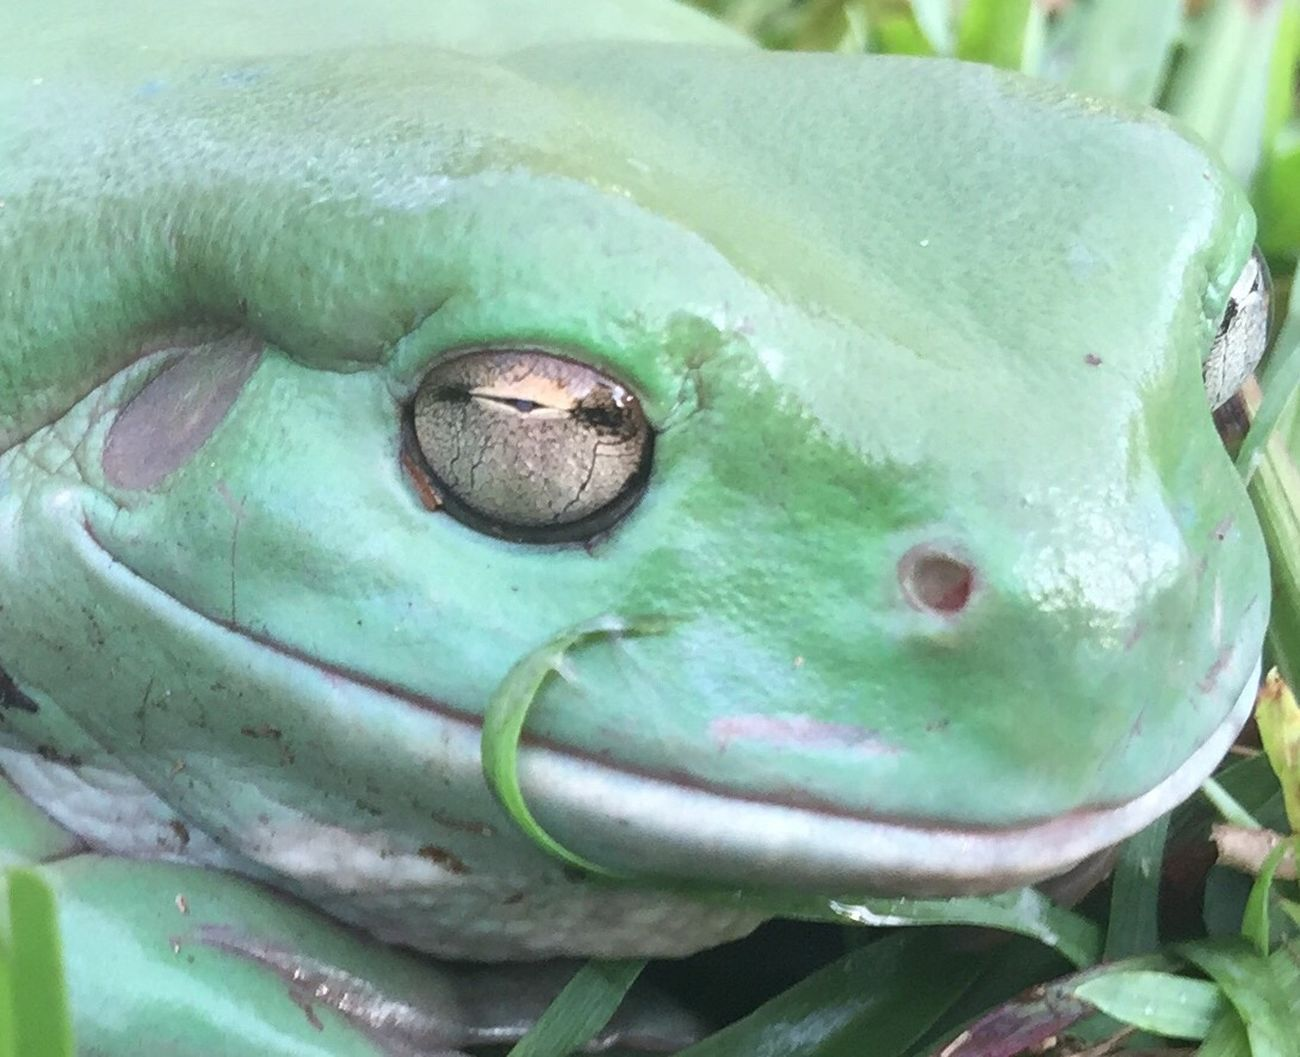 Green Color Close-up Reptile Outdoors Upclose And Personal Frog Enjoying Life Eye4photography